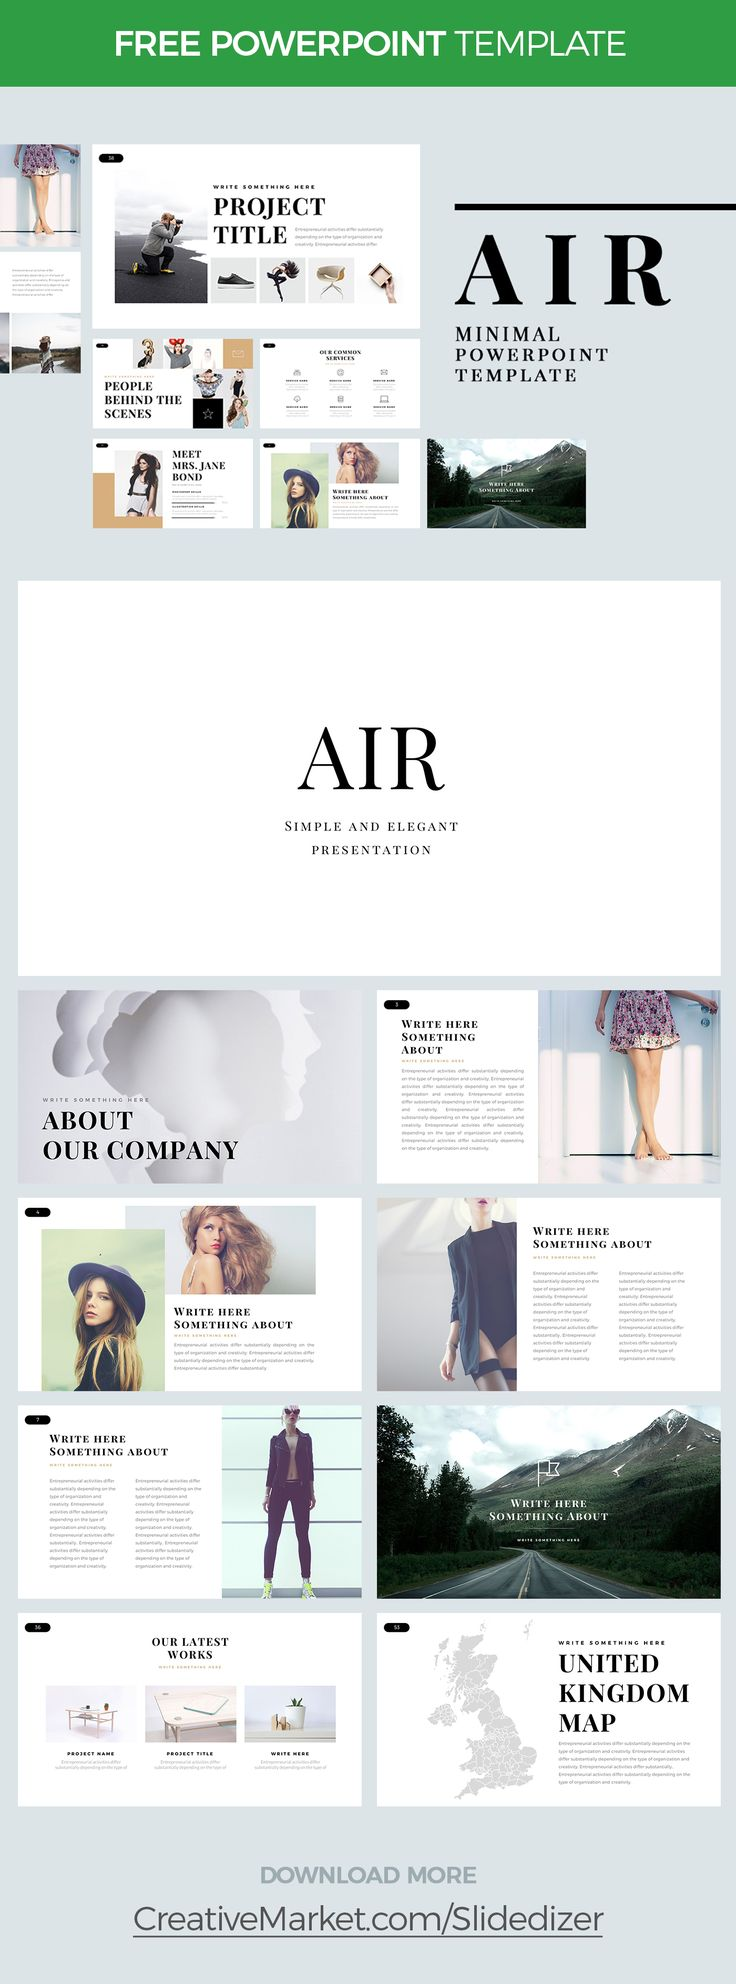 AIR - FREE MINIMAL POWERPOINT TEMPLATE on Behance